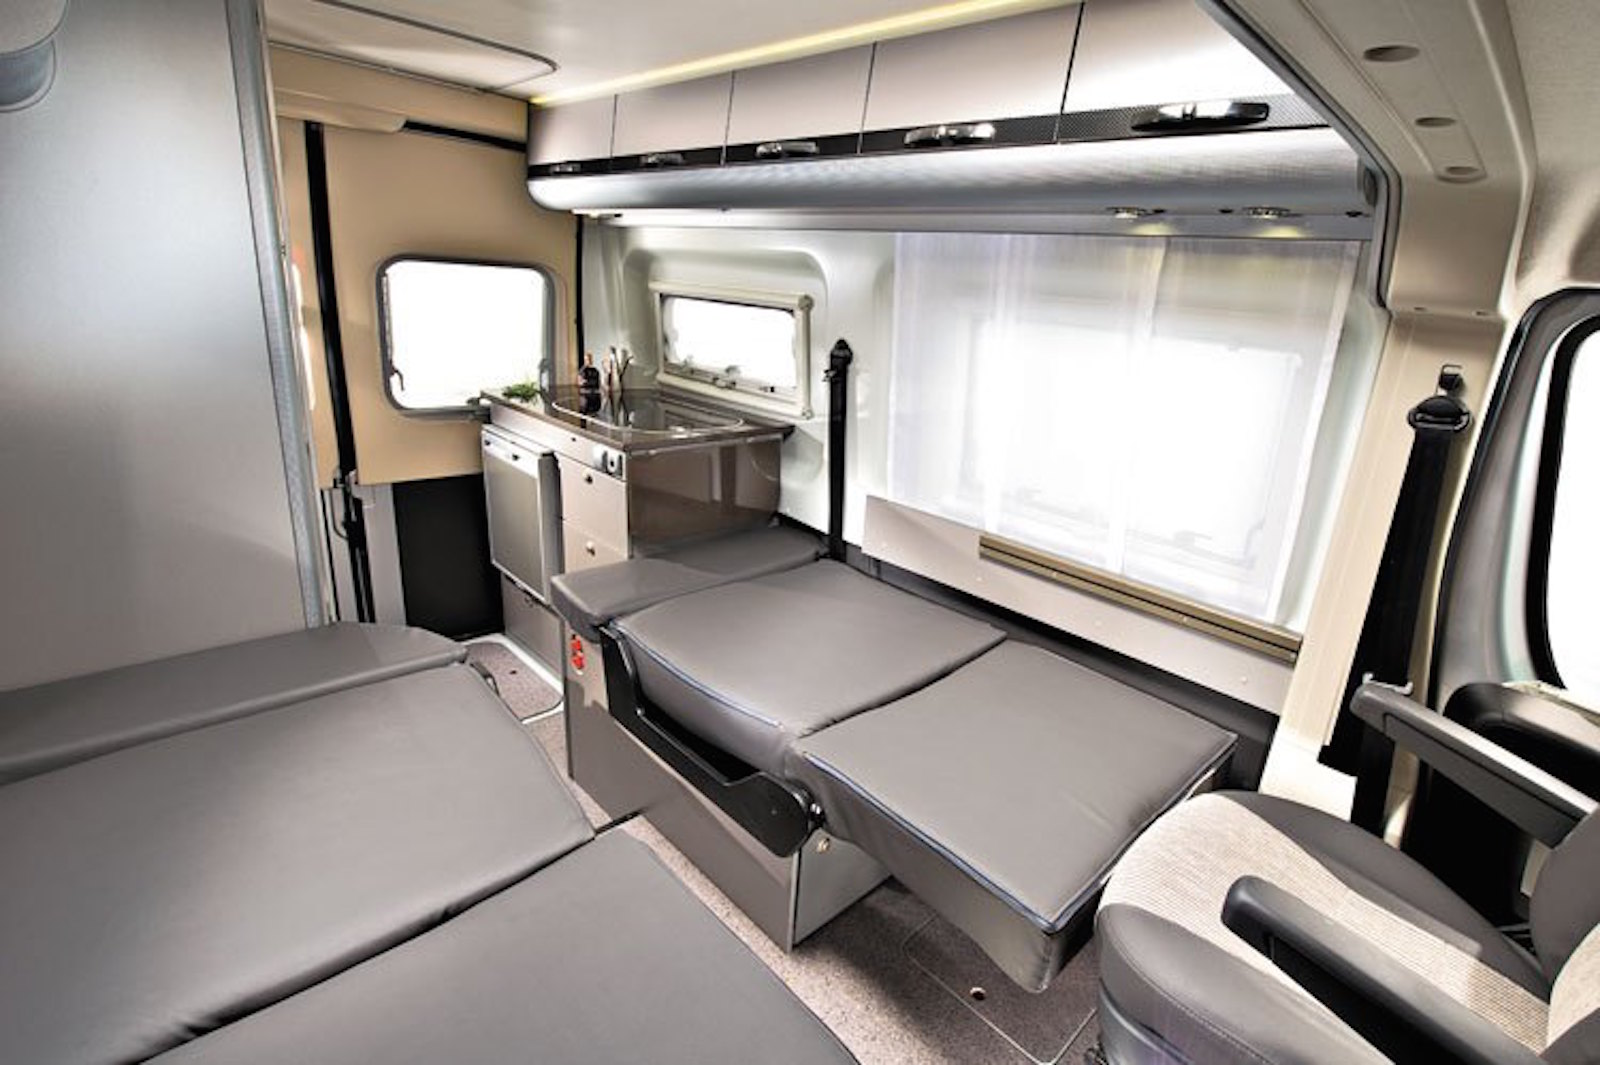 2 Berth Motorhome For Hire Adria Twin 500s Motorhome